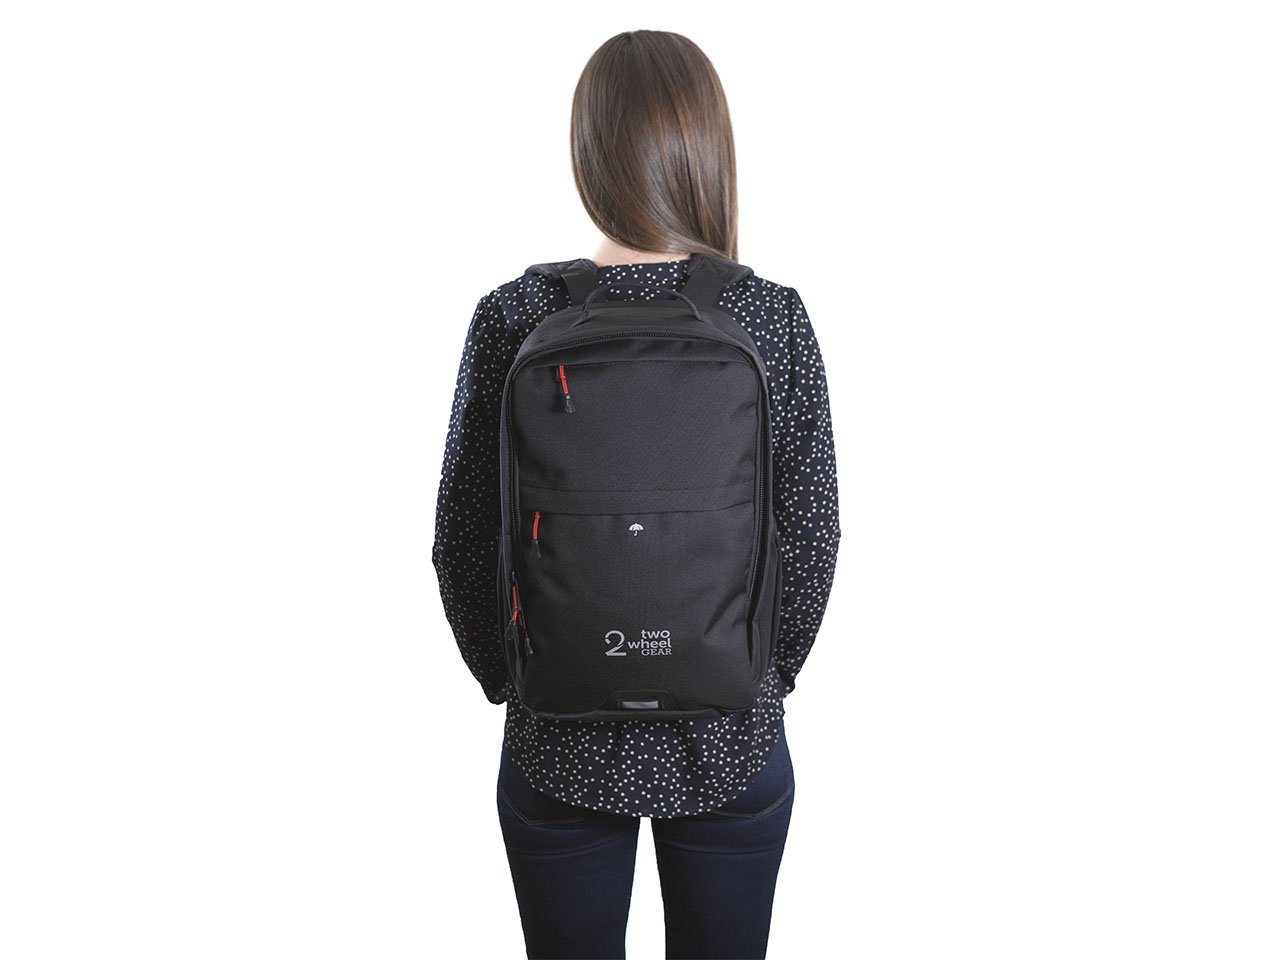 Black - Bike Bags - Pannier Backpack Convertible (2018) - On Woman